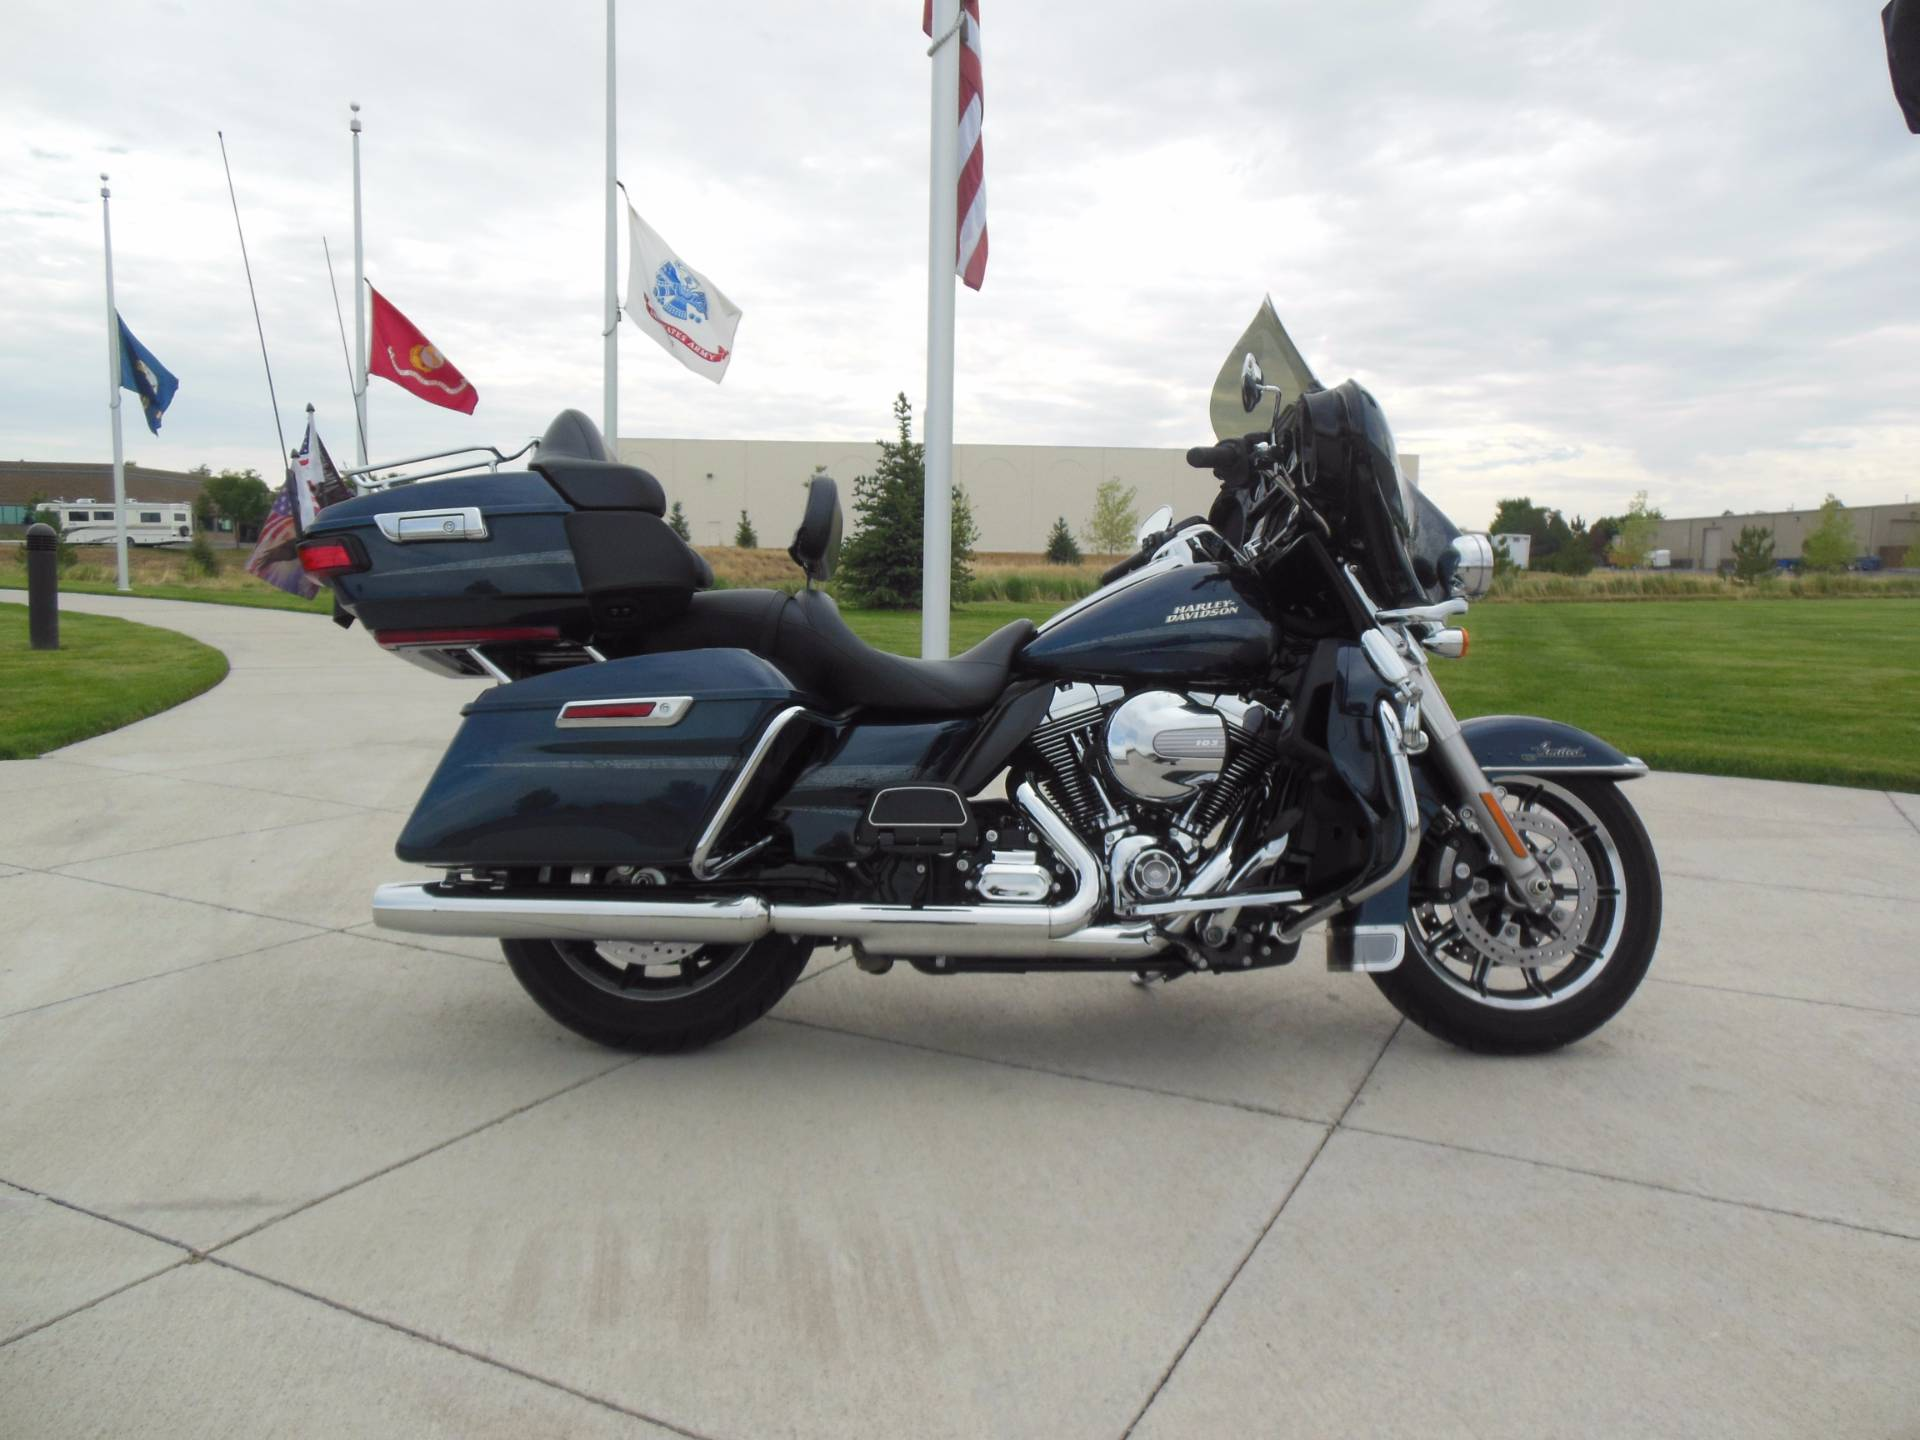 2016 Harley Davidson Ultra Limited for sale in Aurora CO